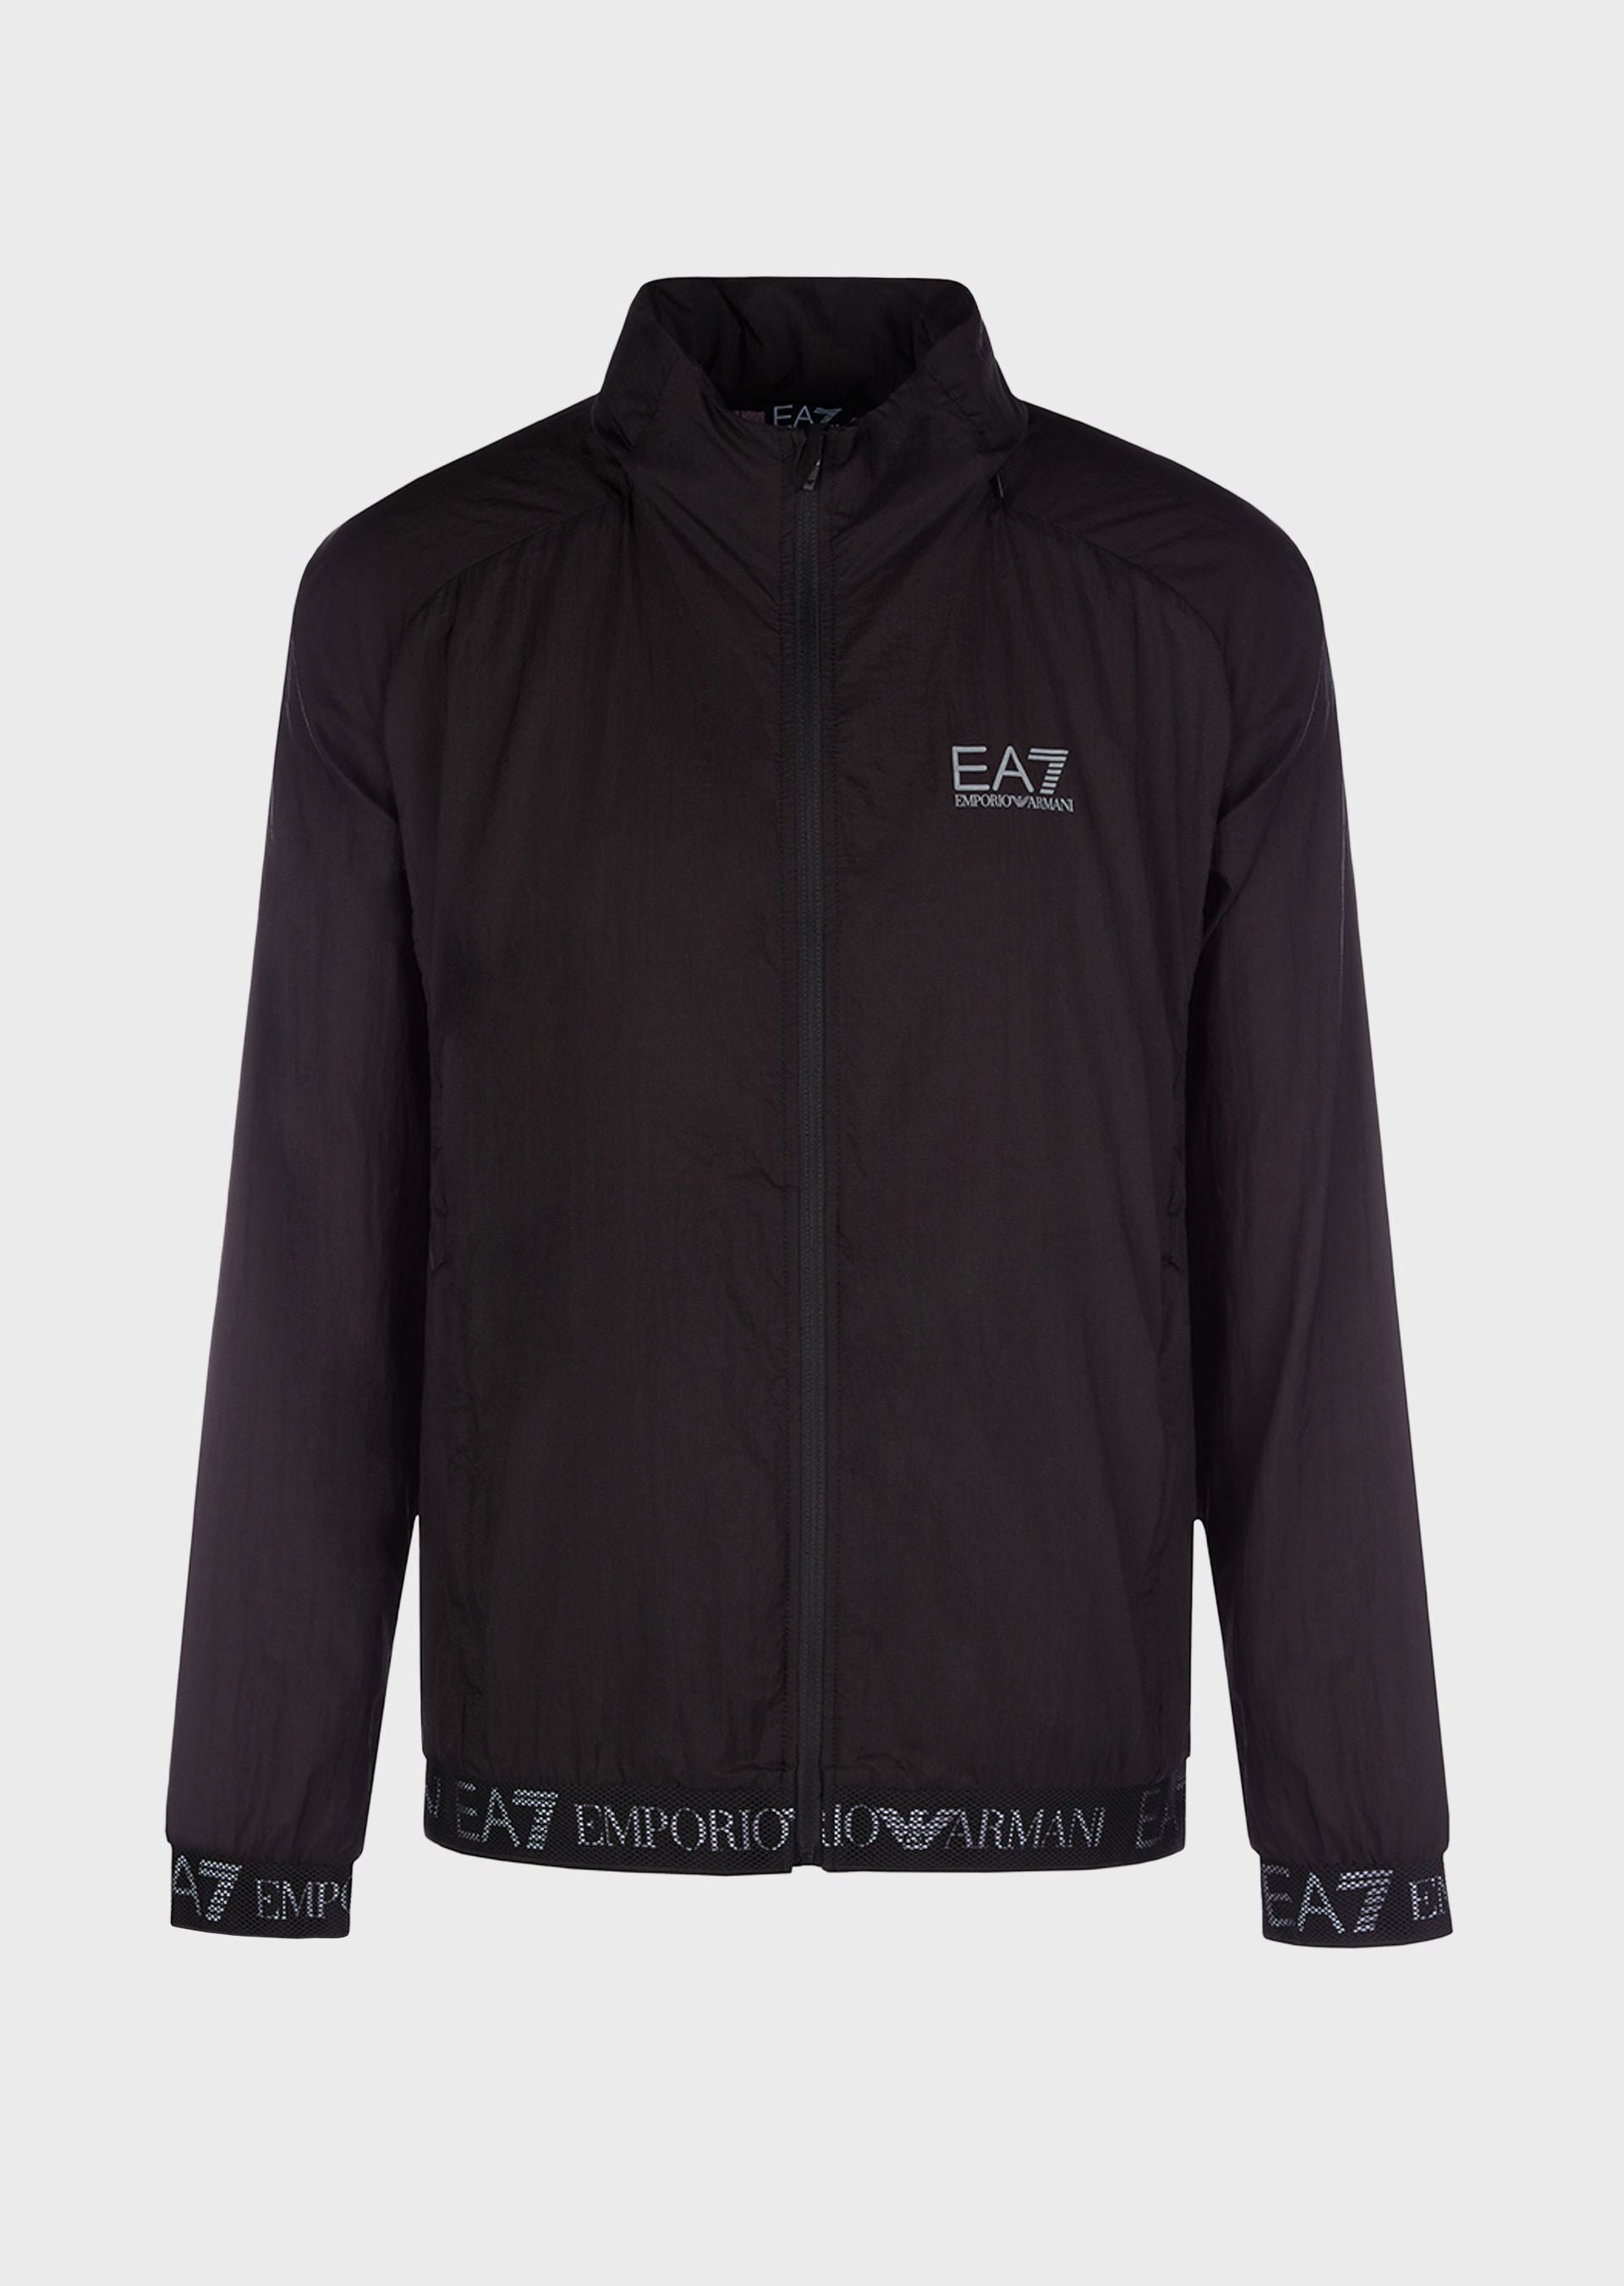 EA7 Ultra Light Zip Through Jacket Black